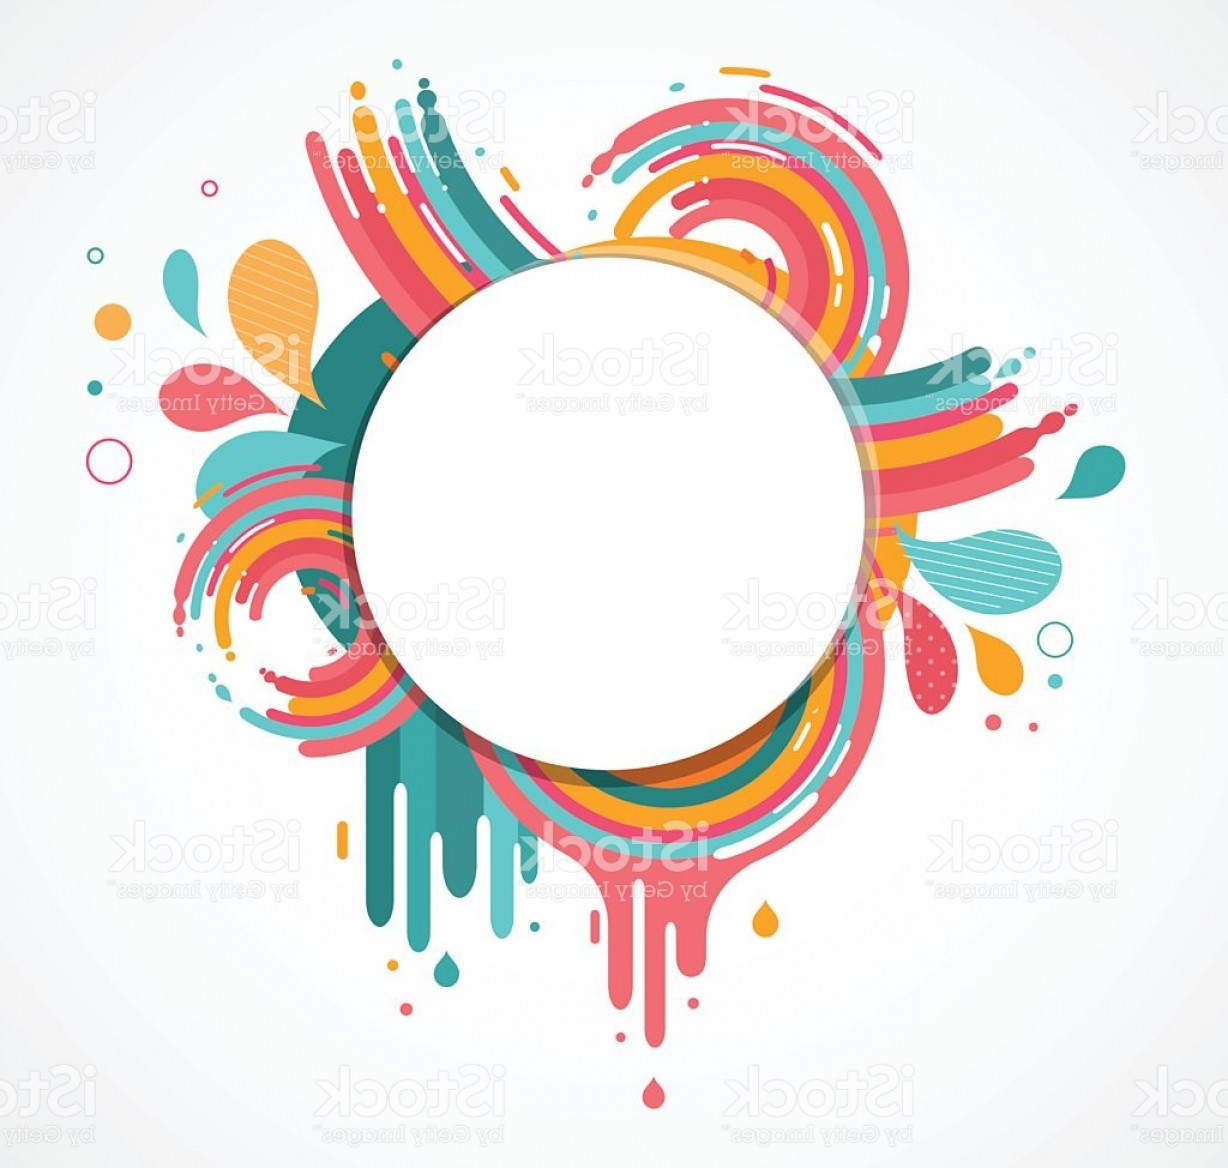 Free Abstract Vector Art: Abstract Colorful Background With Text Space Gm